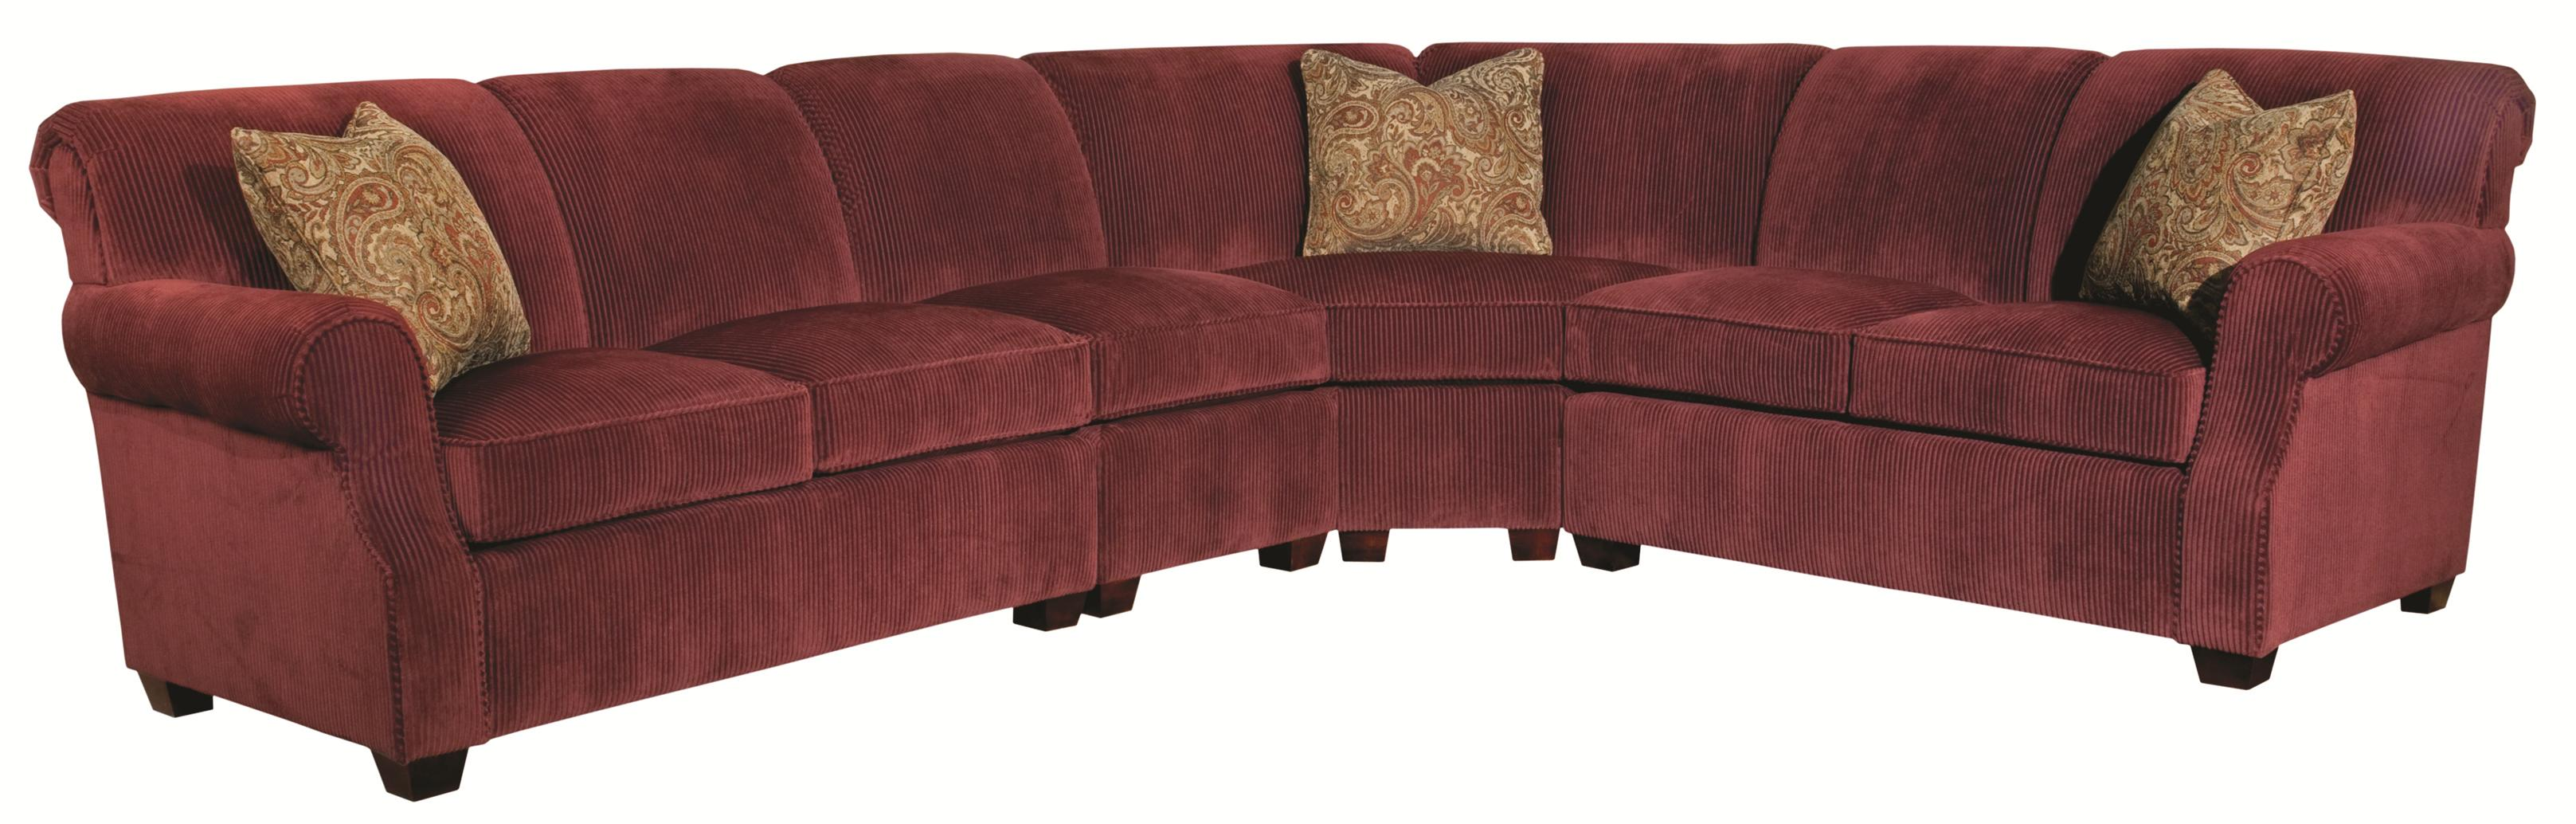 4 Piece Sectional Sofa